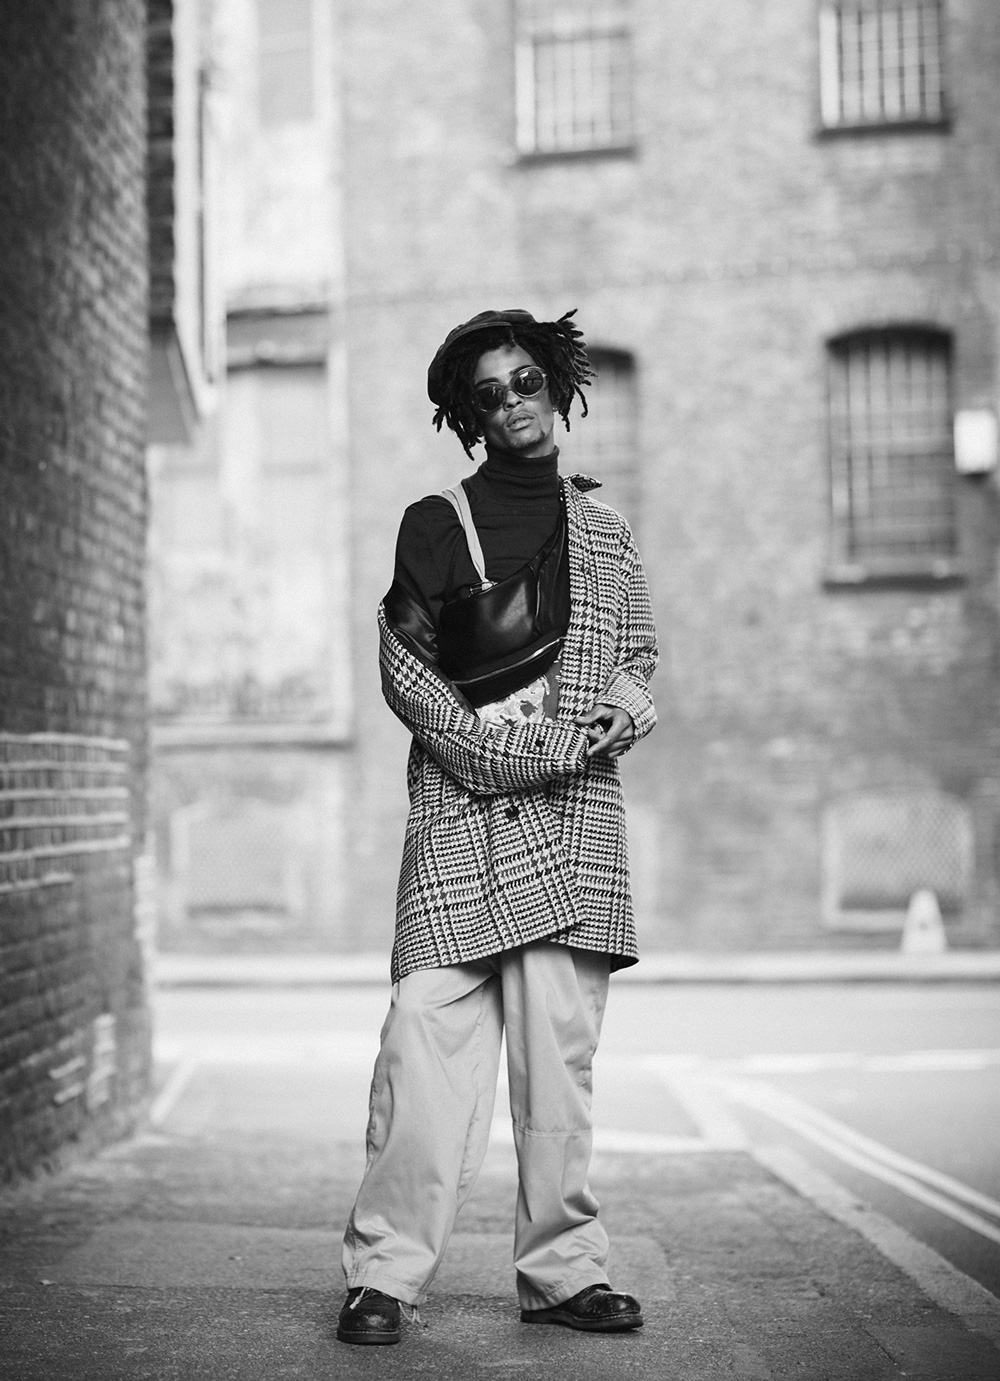 Marcus Sivyer photographed by Adam Fussell and styled by Geoff K